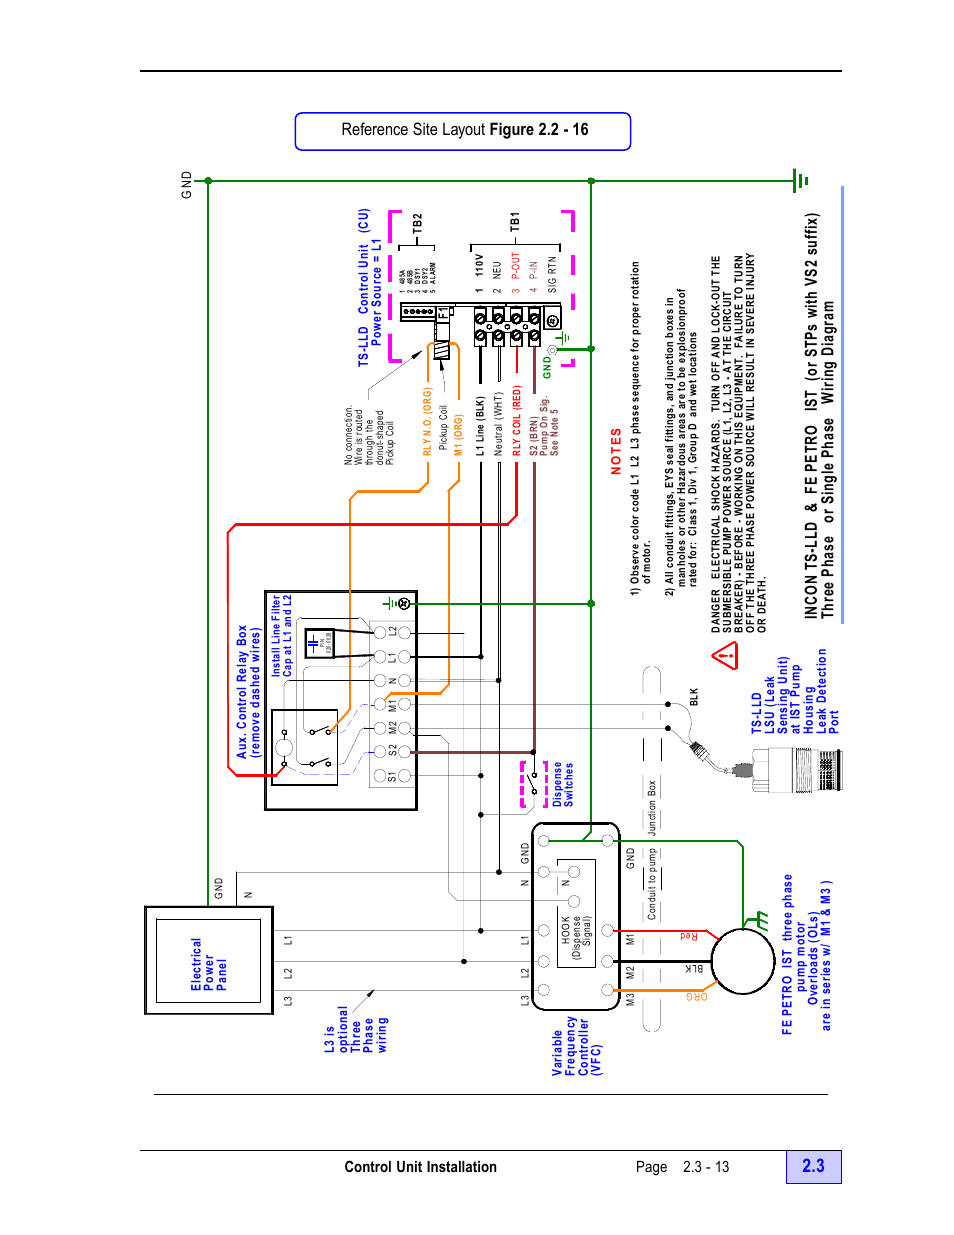 Variable Frequency Controller Vfc Motor Control Box And Ist Franklin Wiring Diagram Pump Interface Schematic To Ts Lld 13 Fueling Systems Installation